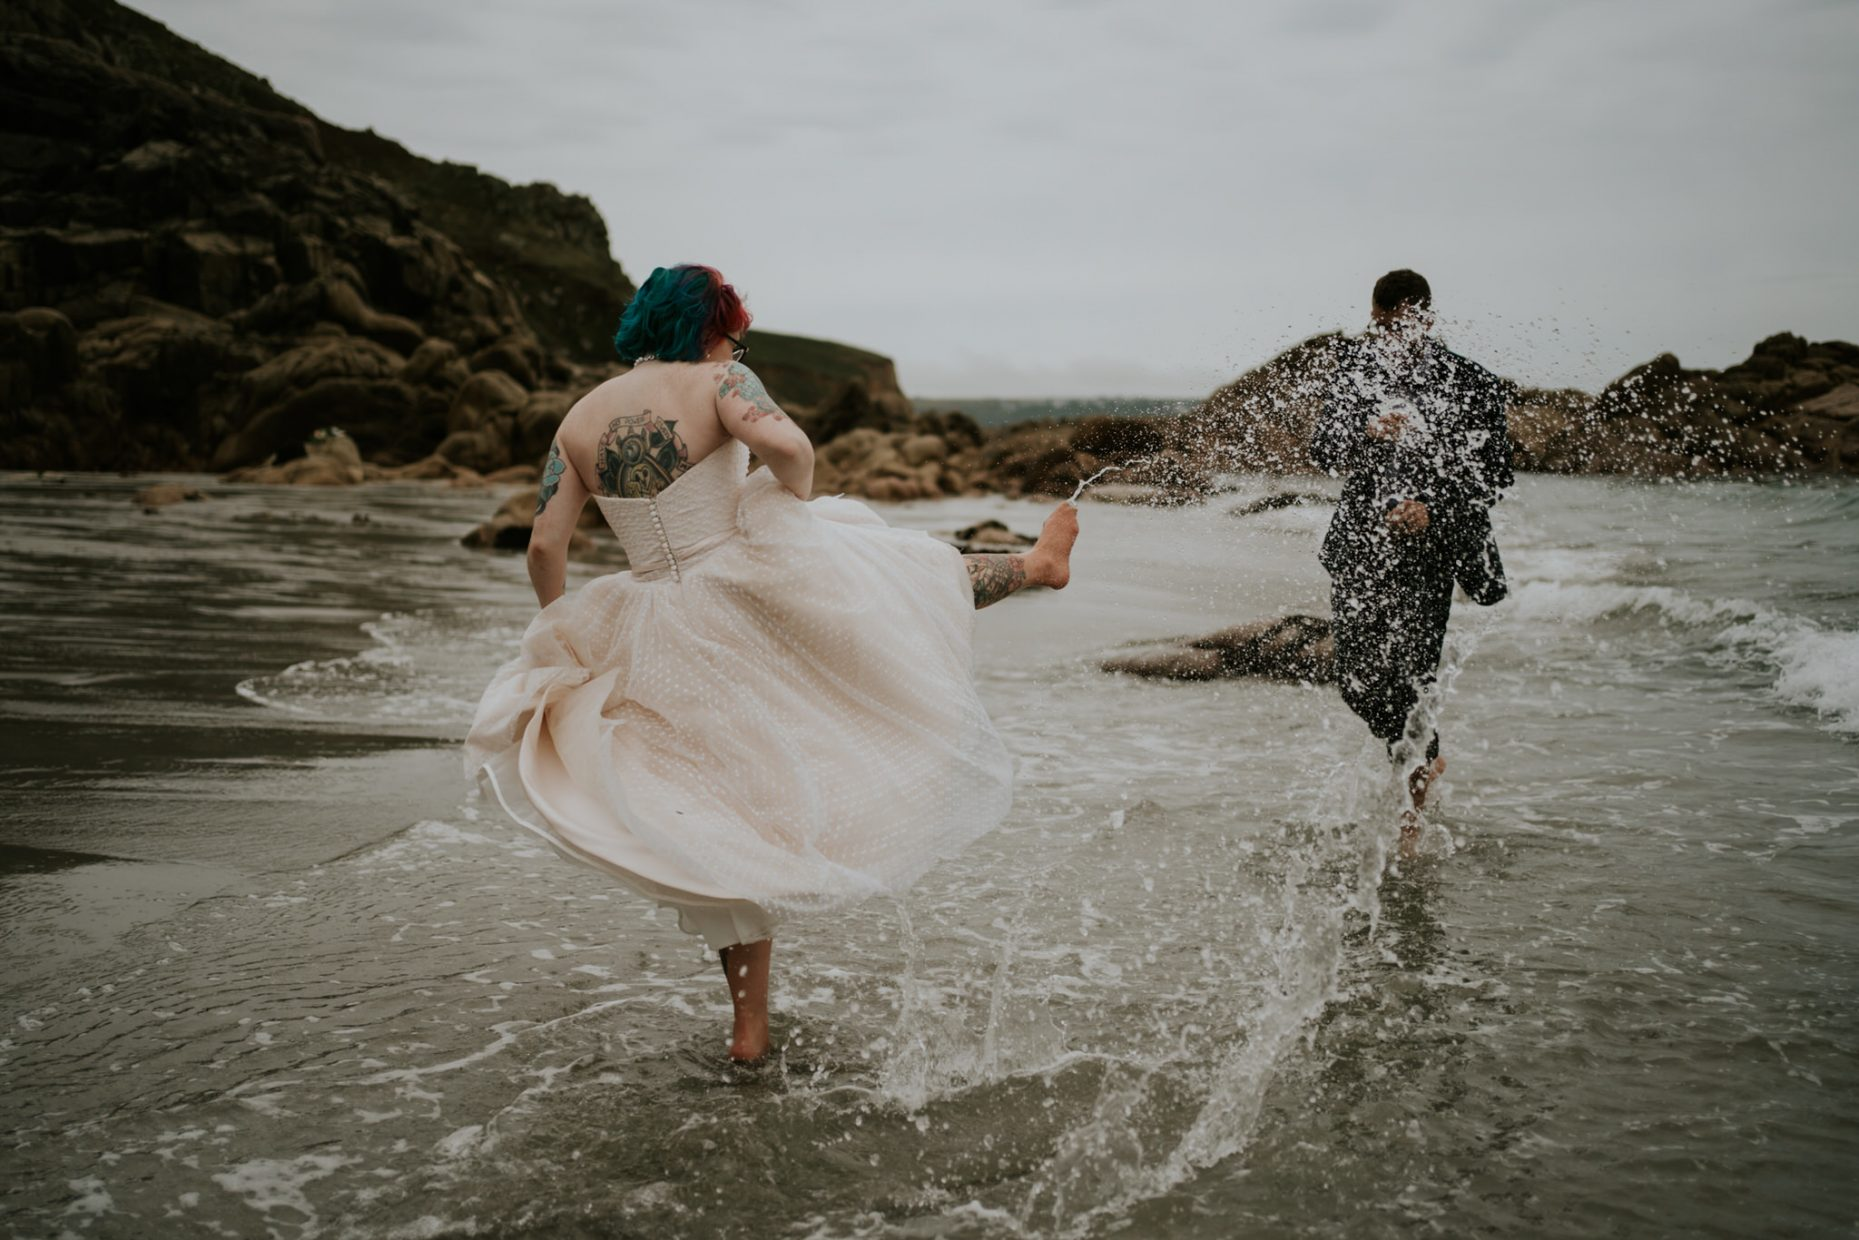 A bride kicks up her leg and splashes her groom as they run laughing through the water